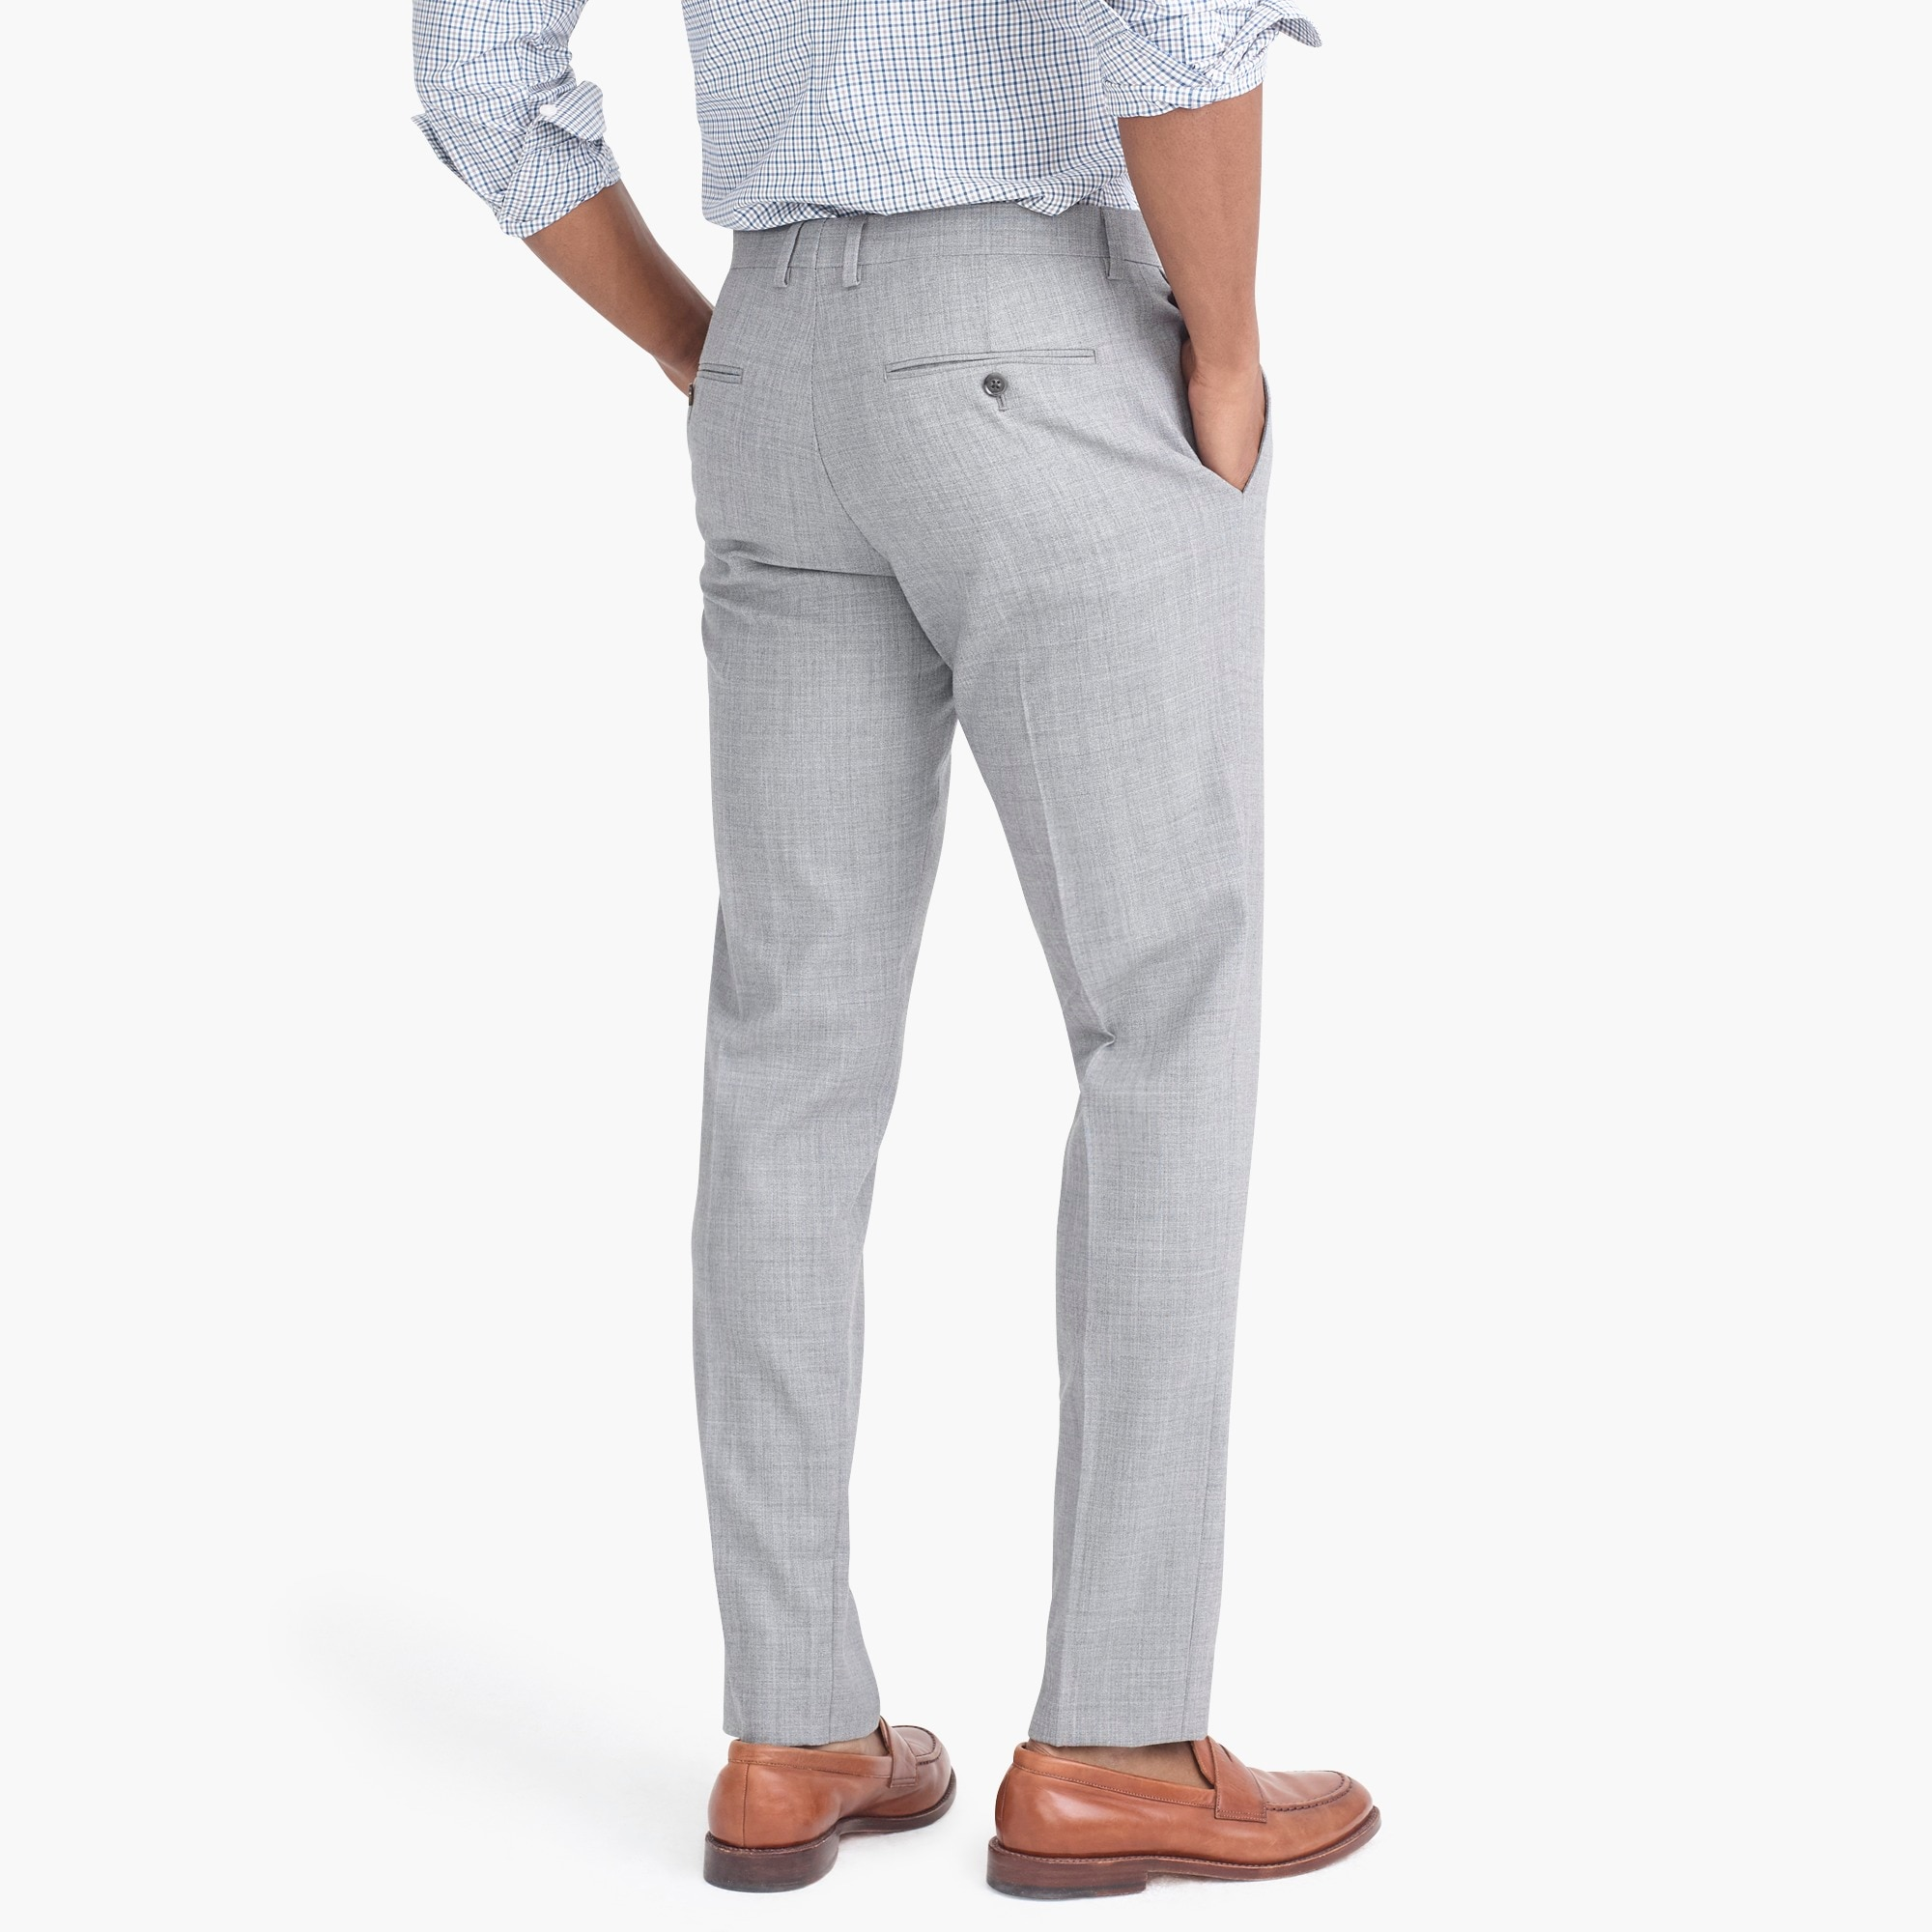 Image 3 for Slim-fit Thompson suit pant in Voyager wool